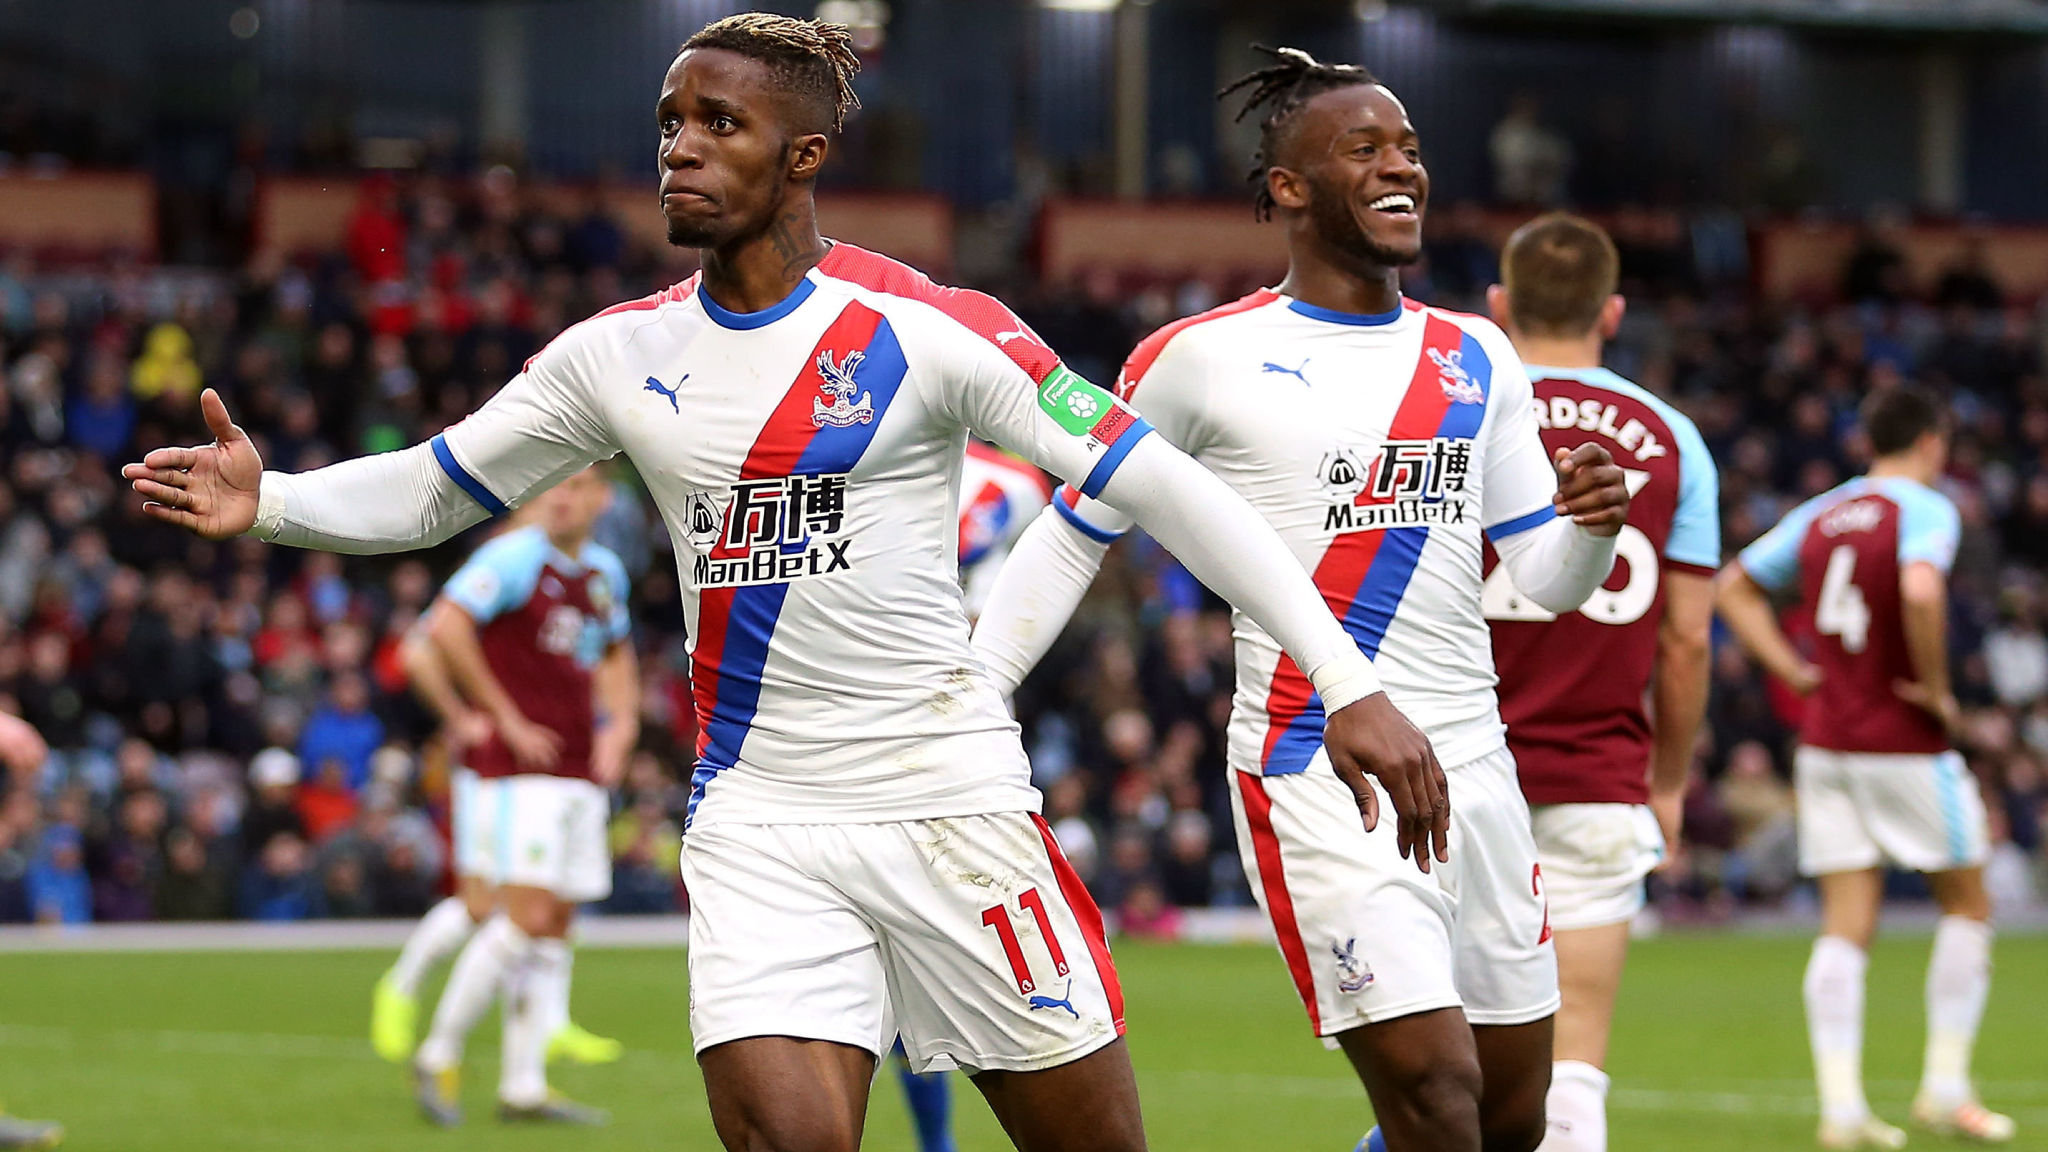 US financiers consider selling stake in Crystal Palace football club |  Financial Times